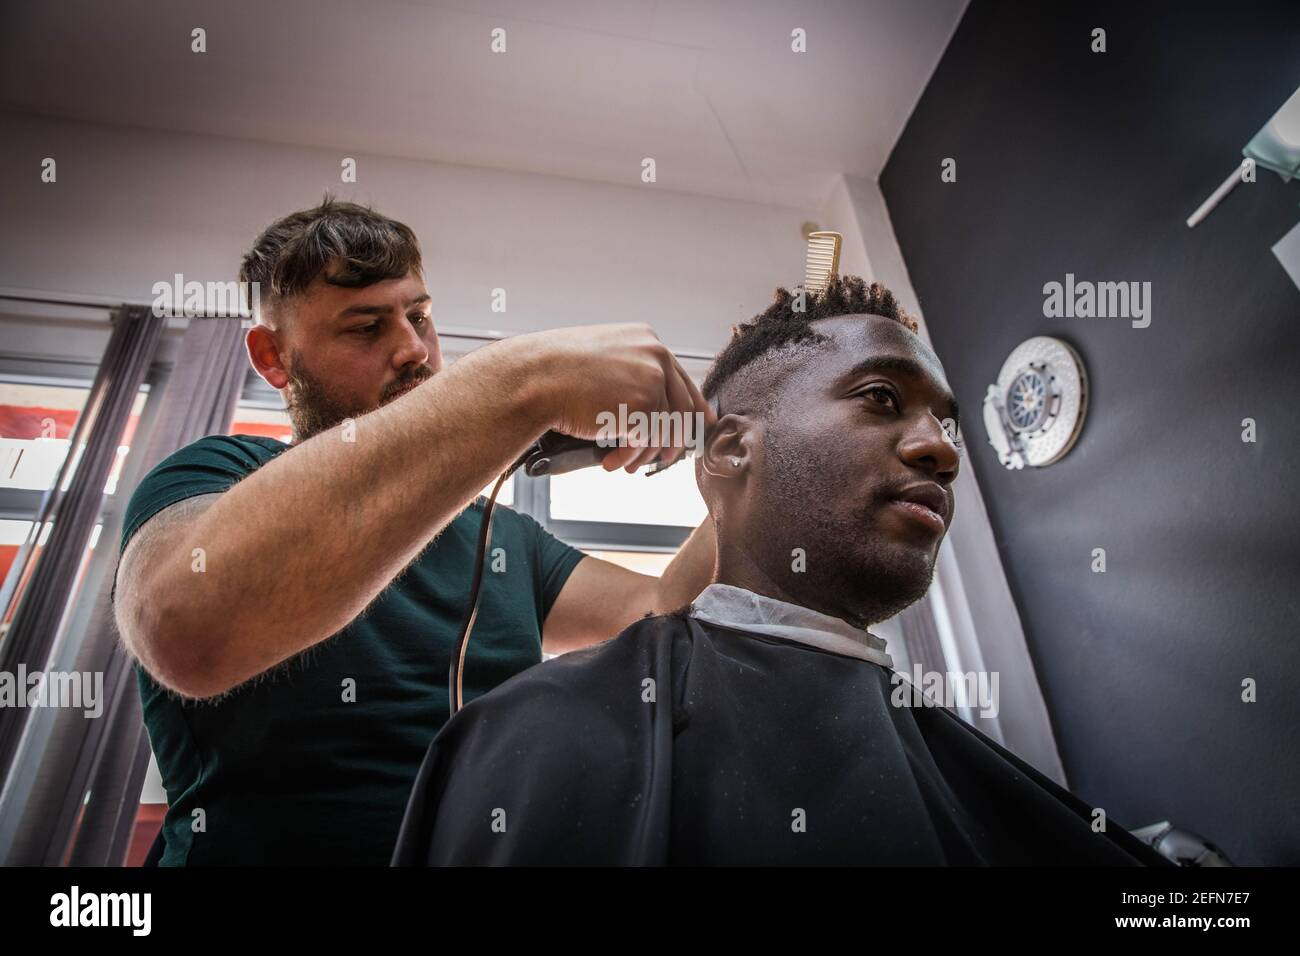 a young African boy gets his hair cut by his barber Stock Photo